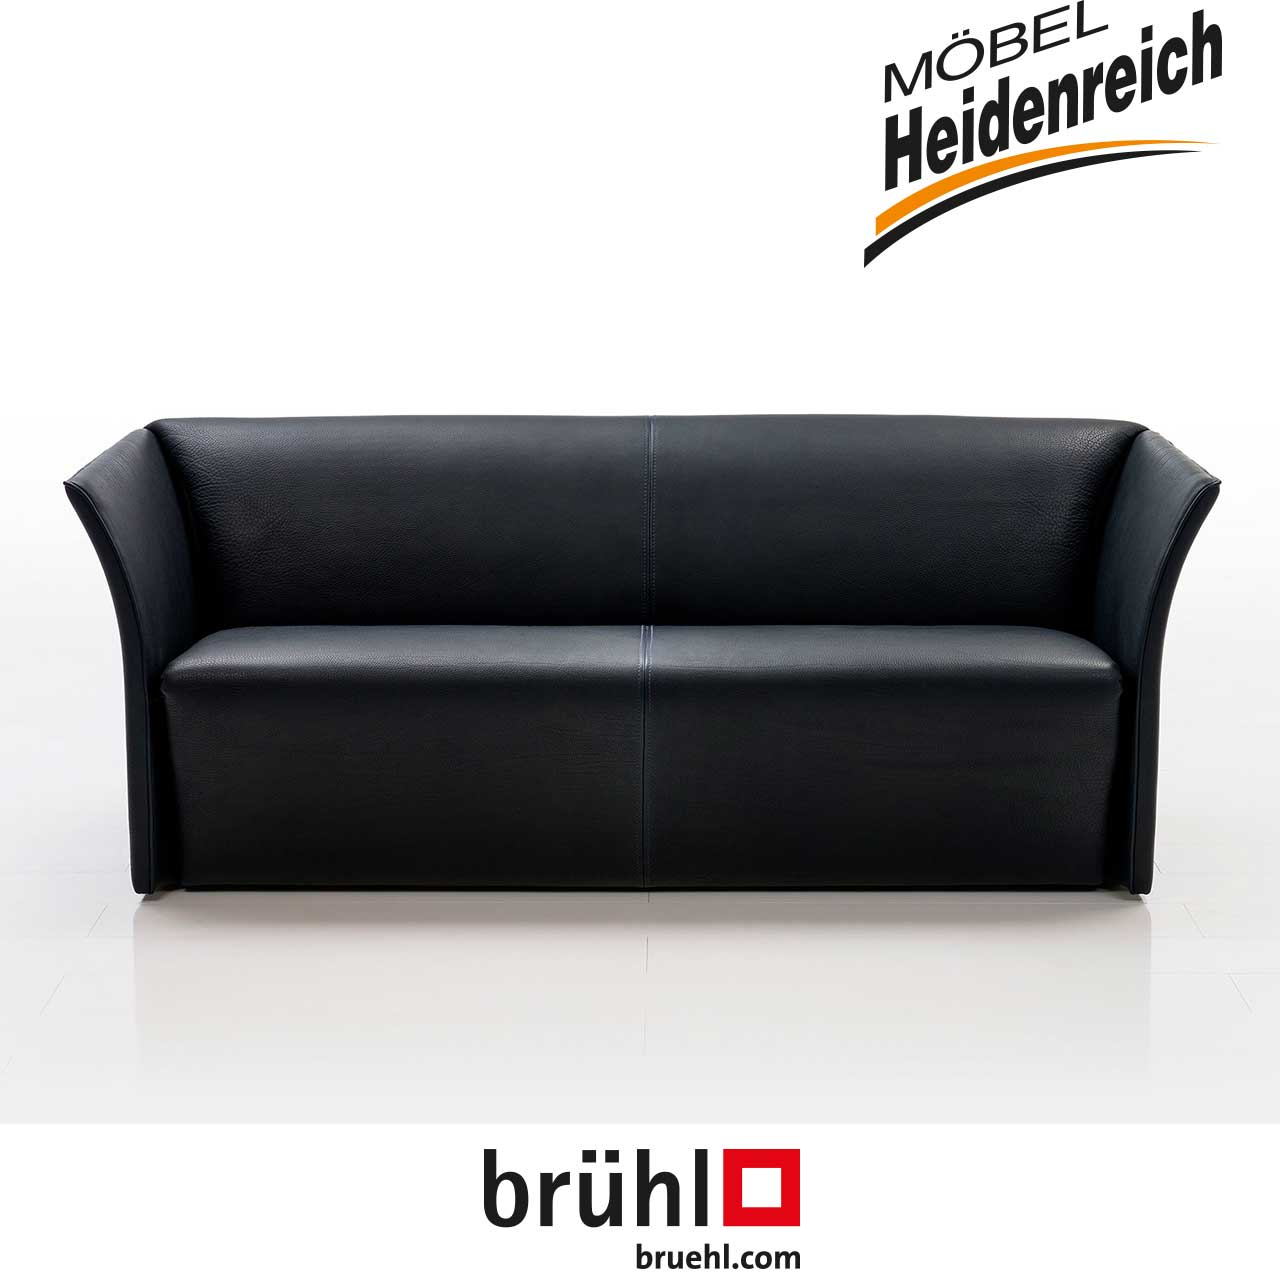 br hl sofa magnat m bel heidenreich. Black Bedroom Furniture Sets. Home Design Ideas